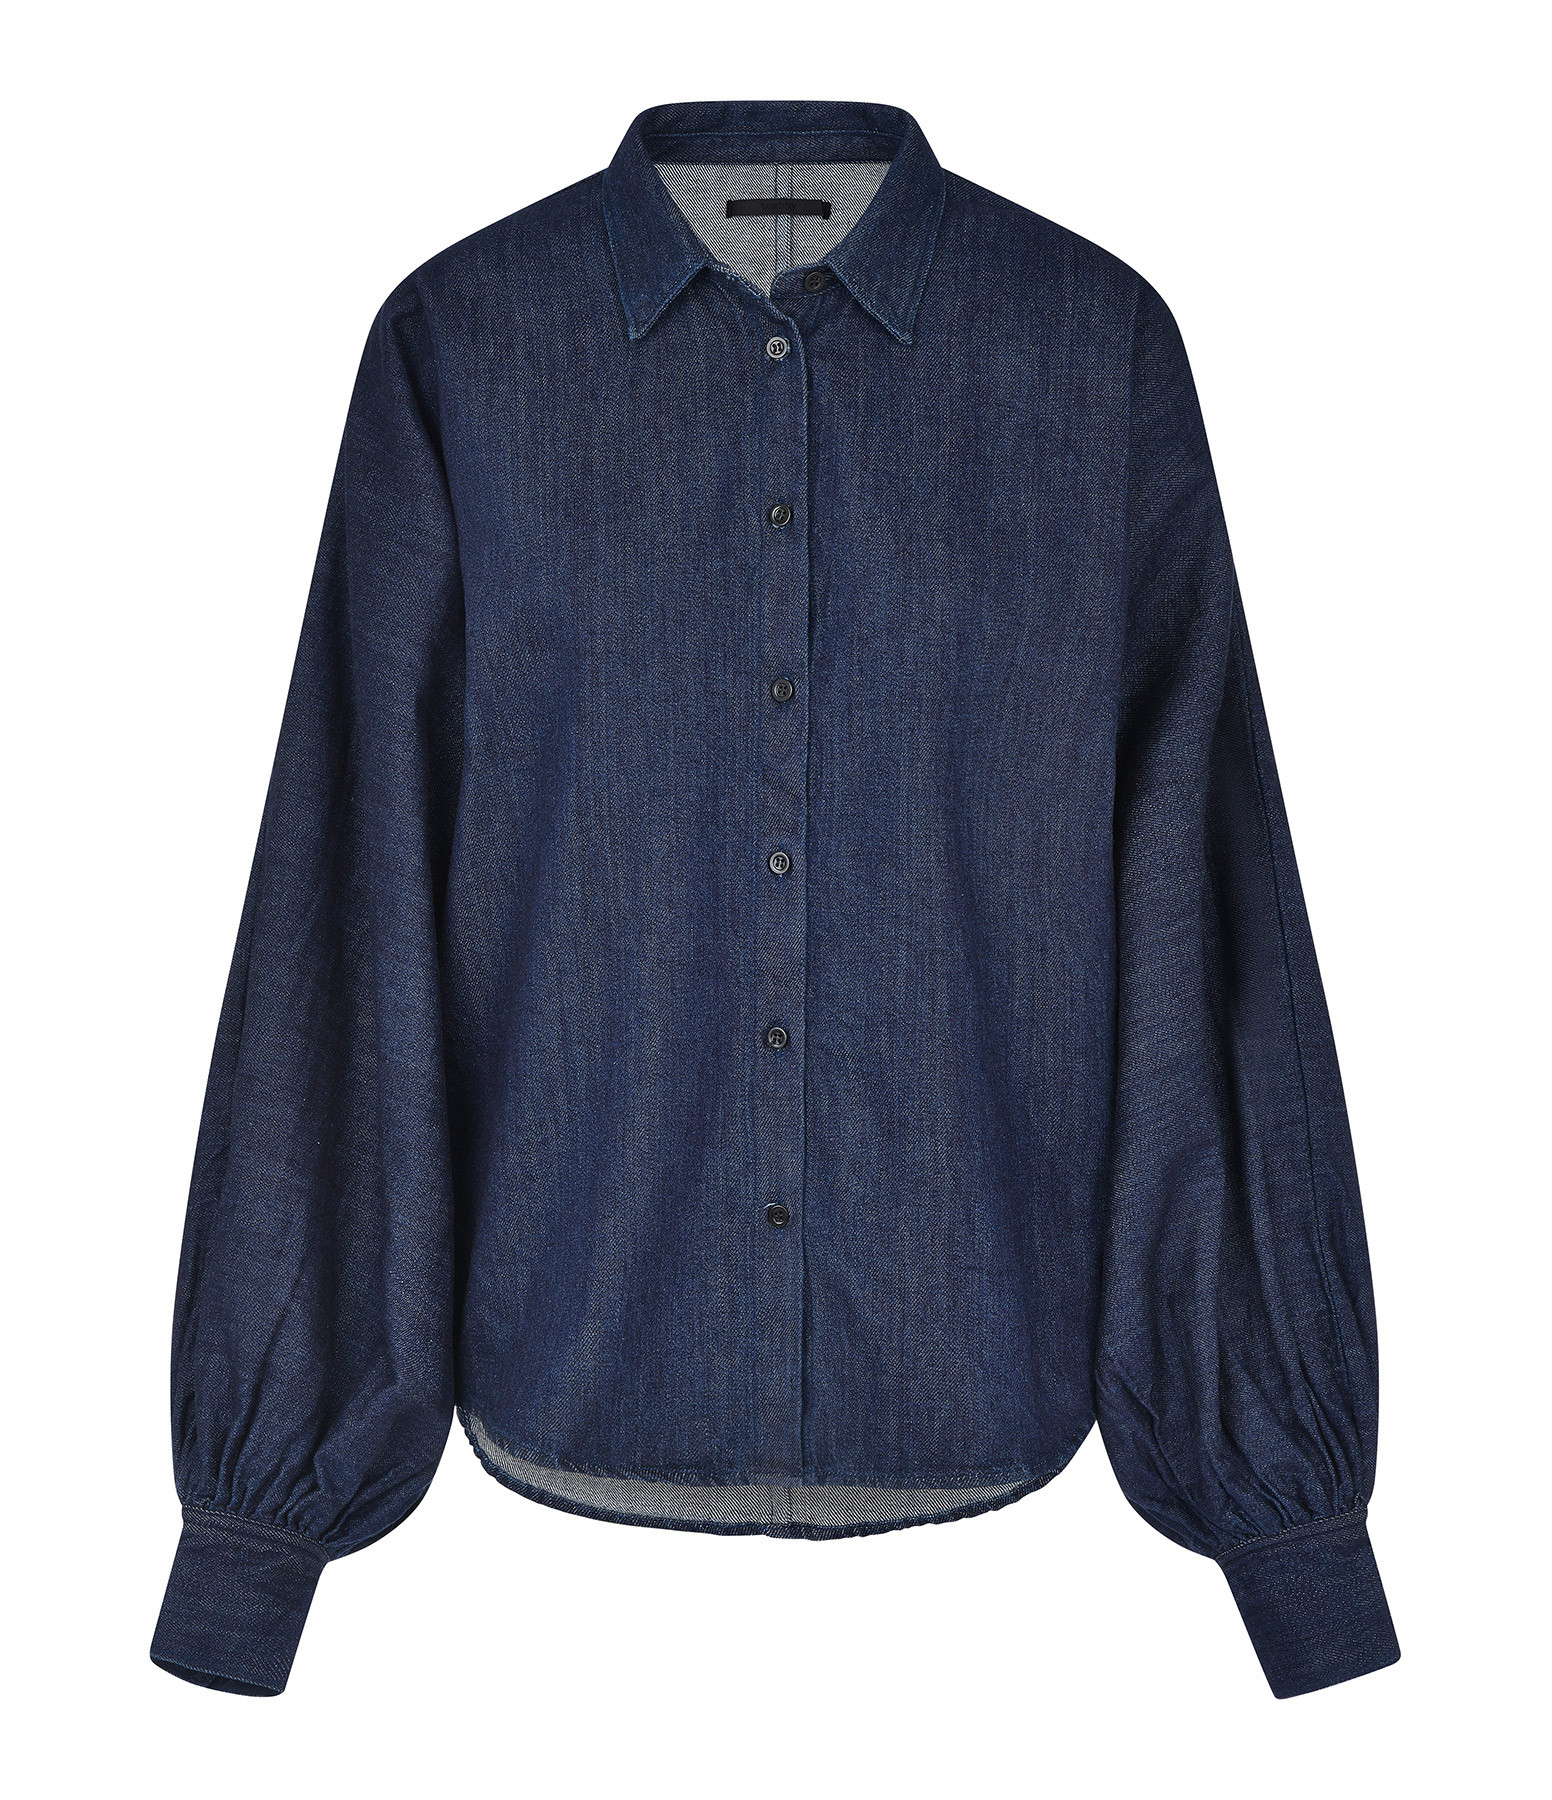 MADE IN TOMBOY - Chemise Claire Navy